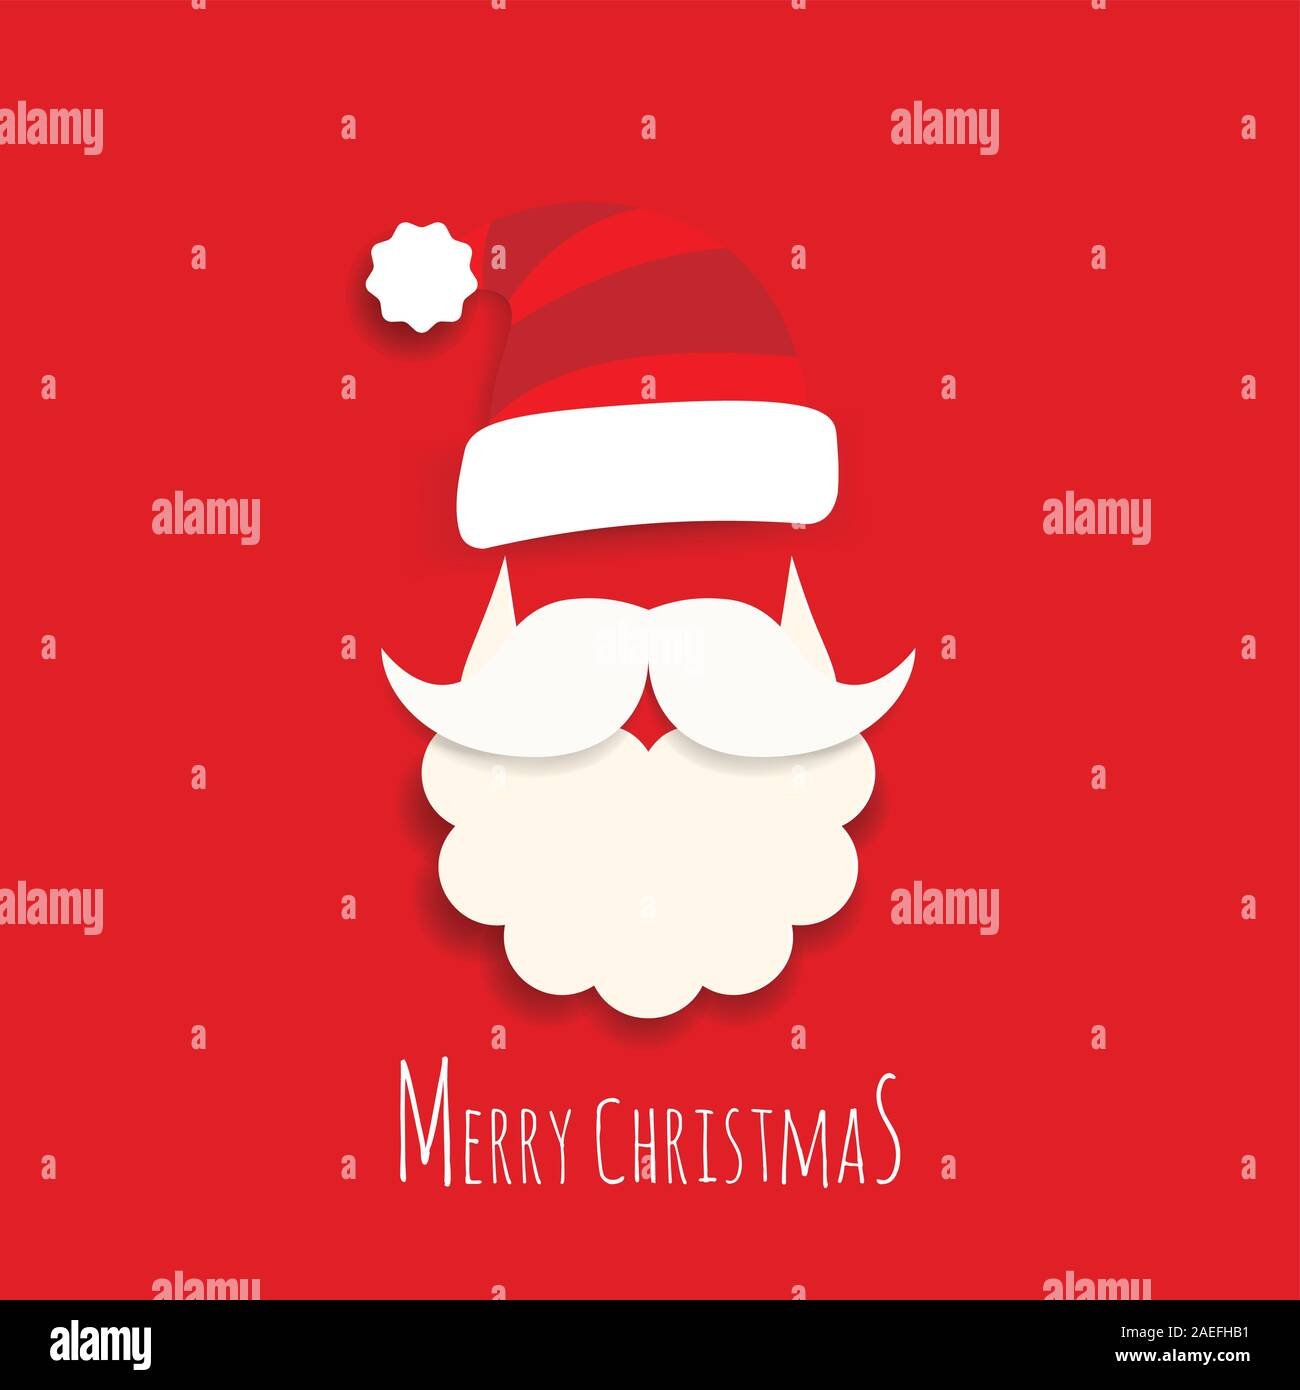 vector cute santa claus cartoon with text merry christmas on red background for christmas wallpaper background 2AEFHB1